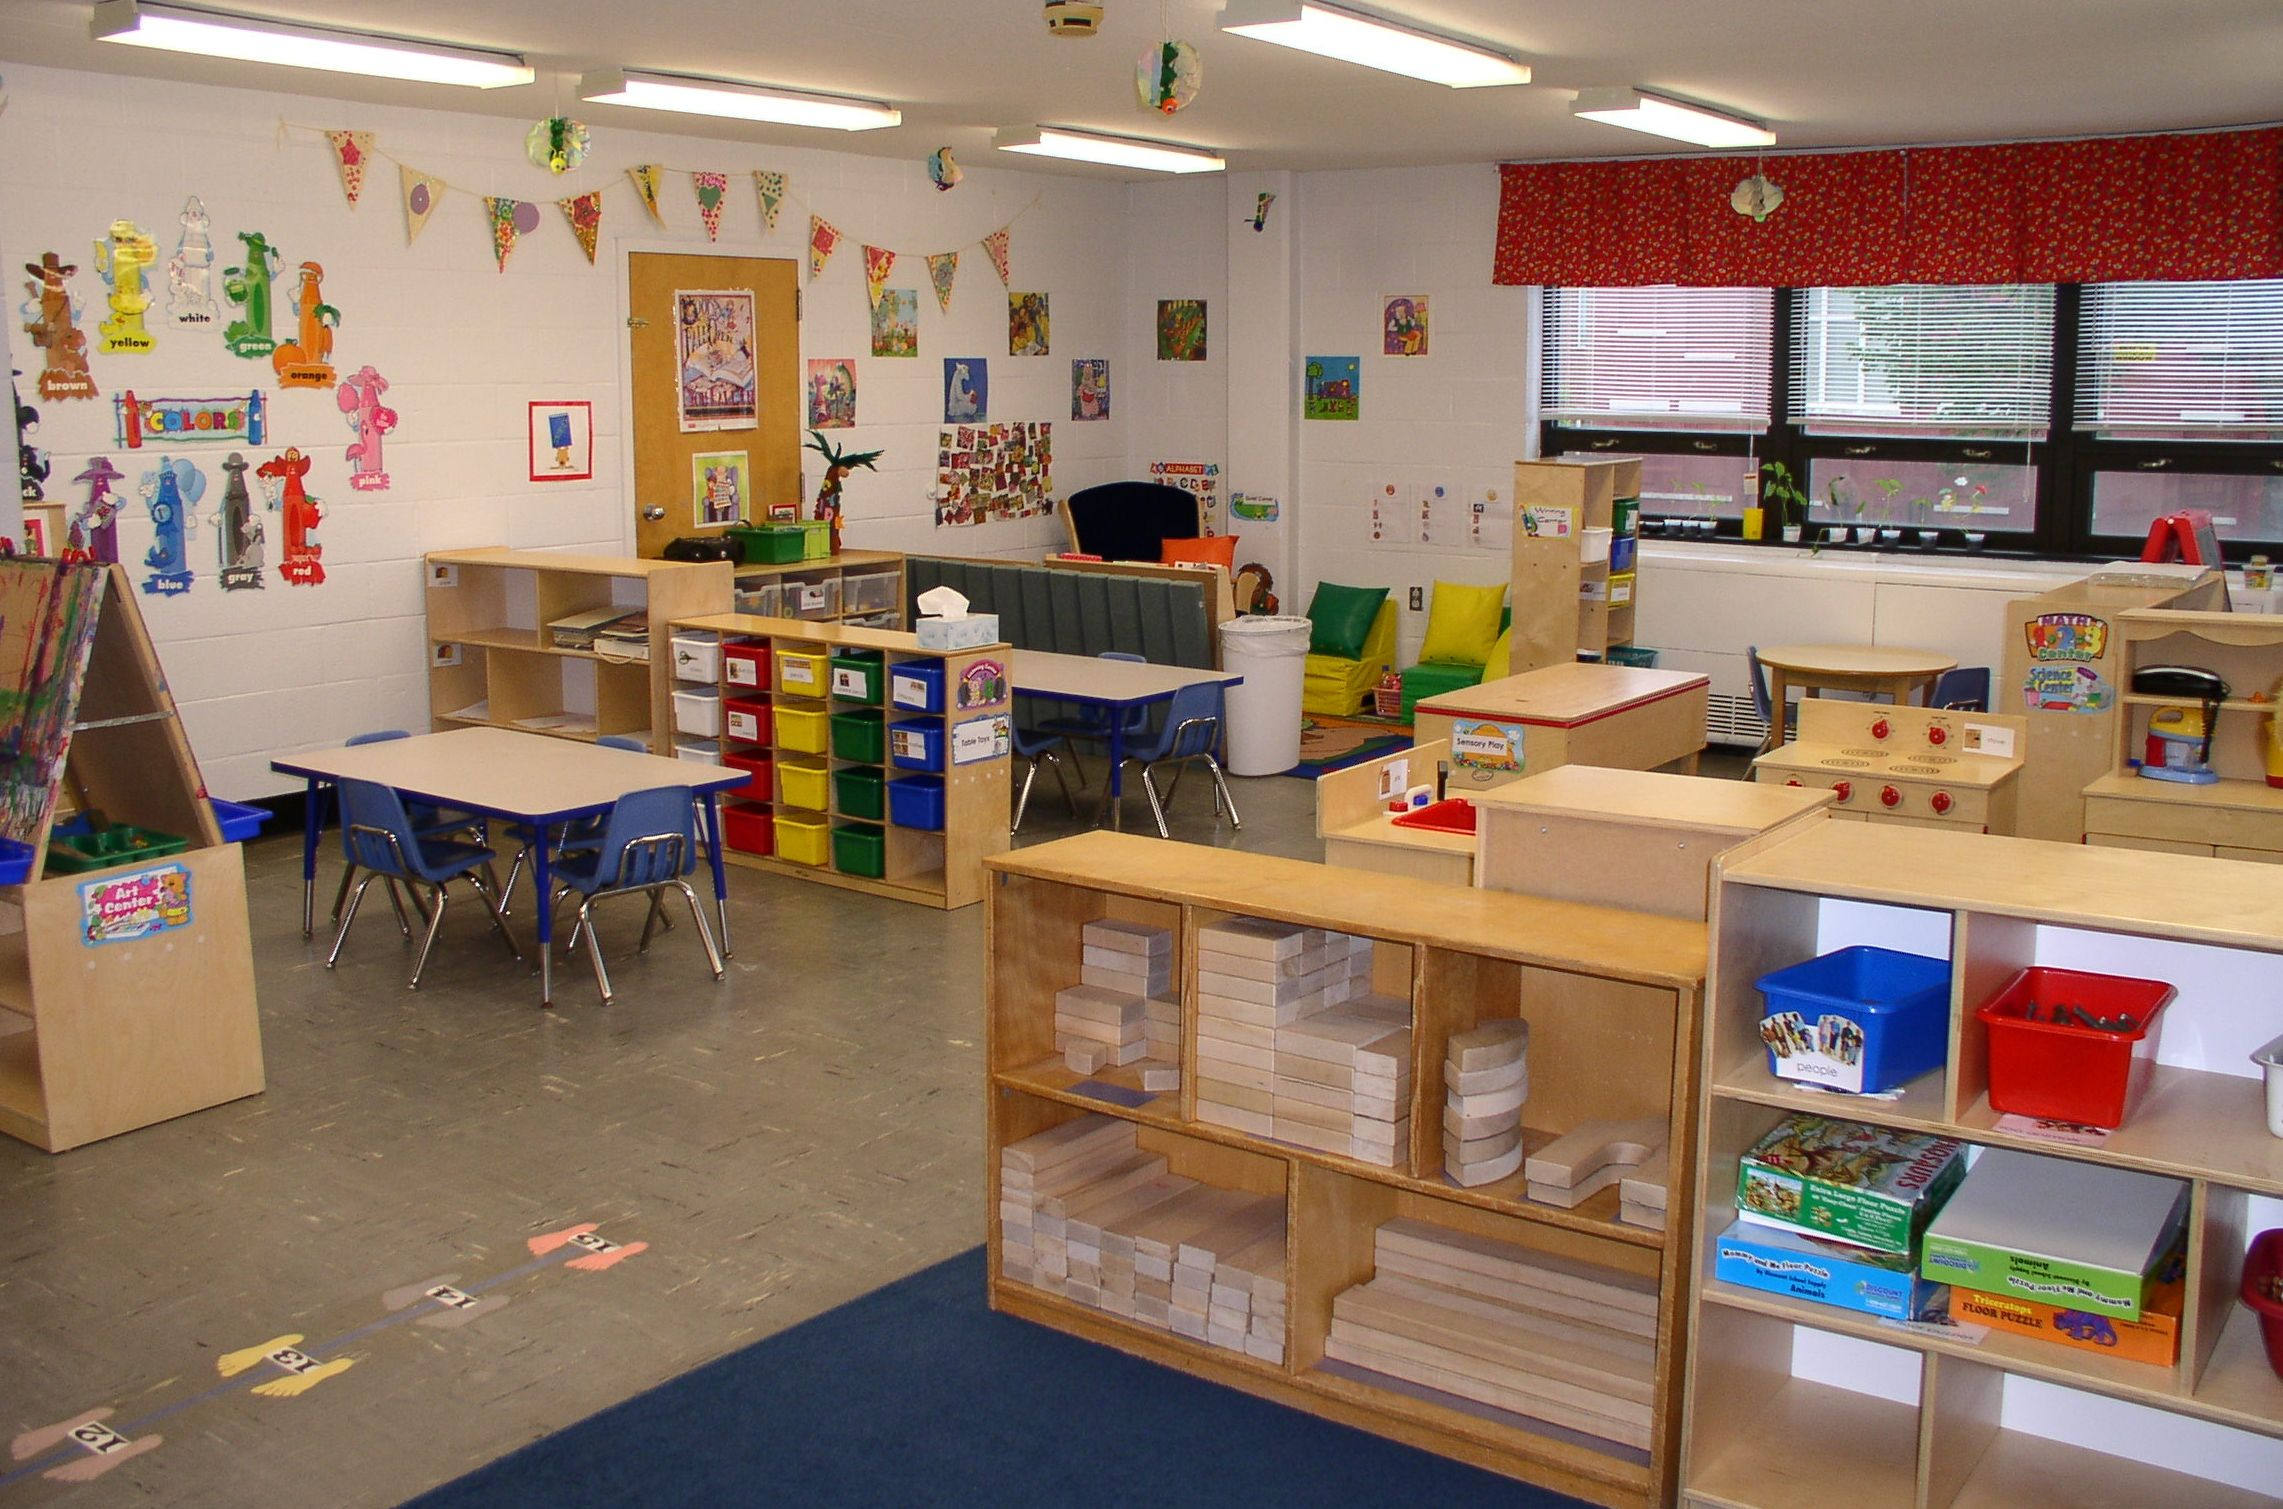 Classroom Design In Kindergarten ~ Ywca elmira nice layout classroom designs for